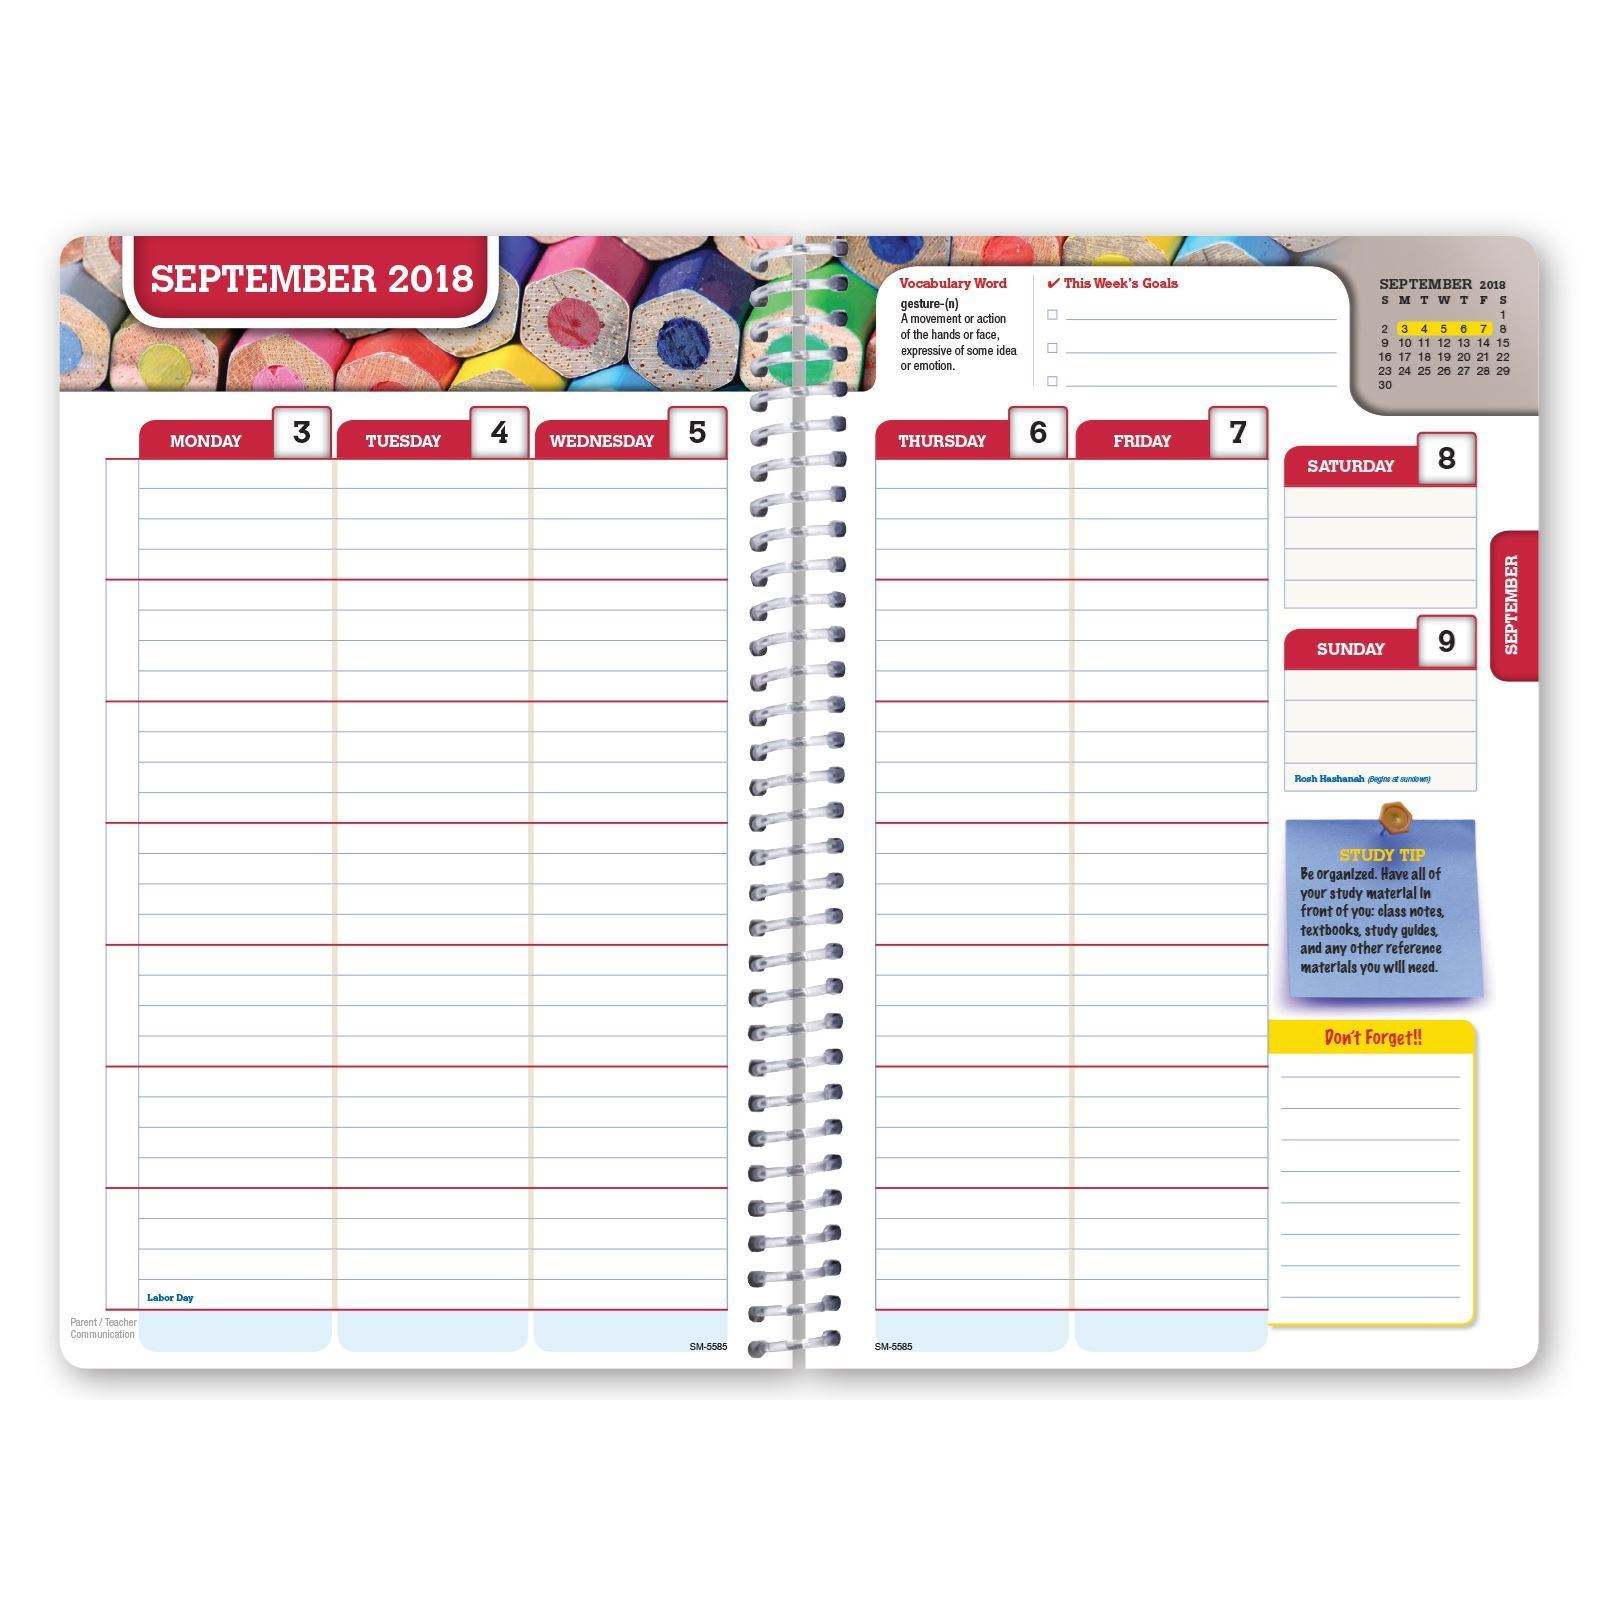 global printed products  hardcover dated middle school or high school student planner for